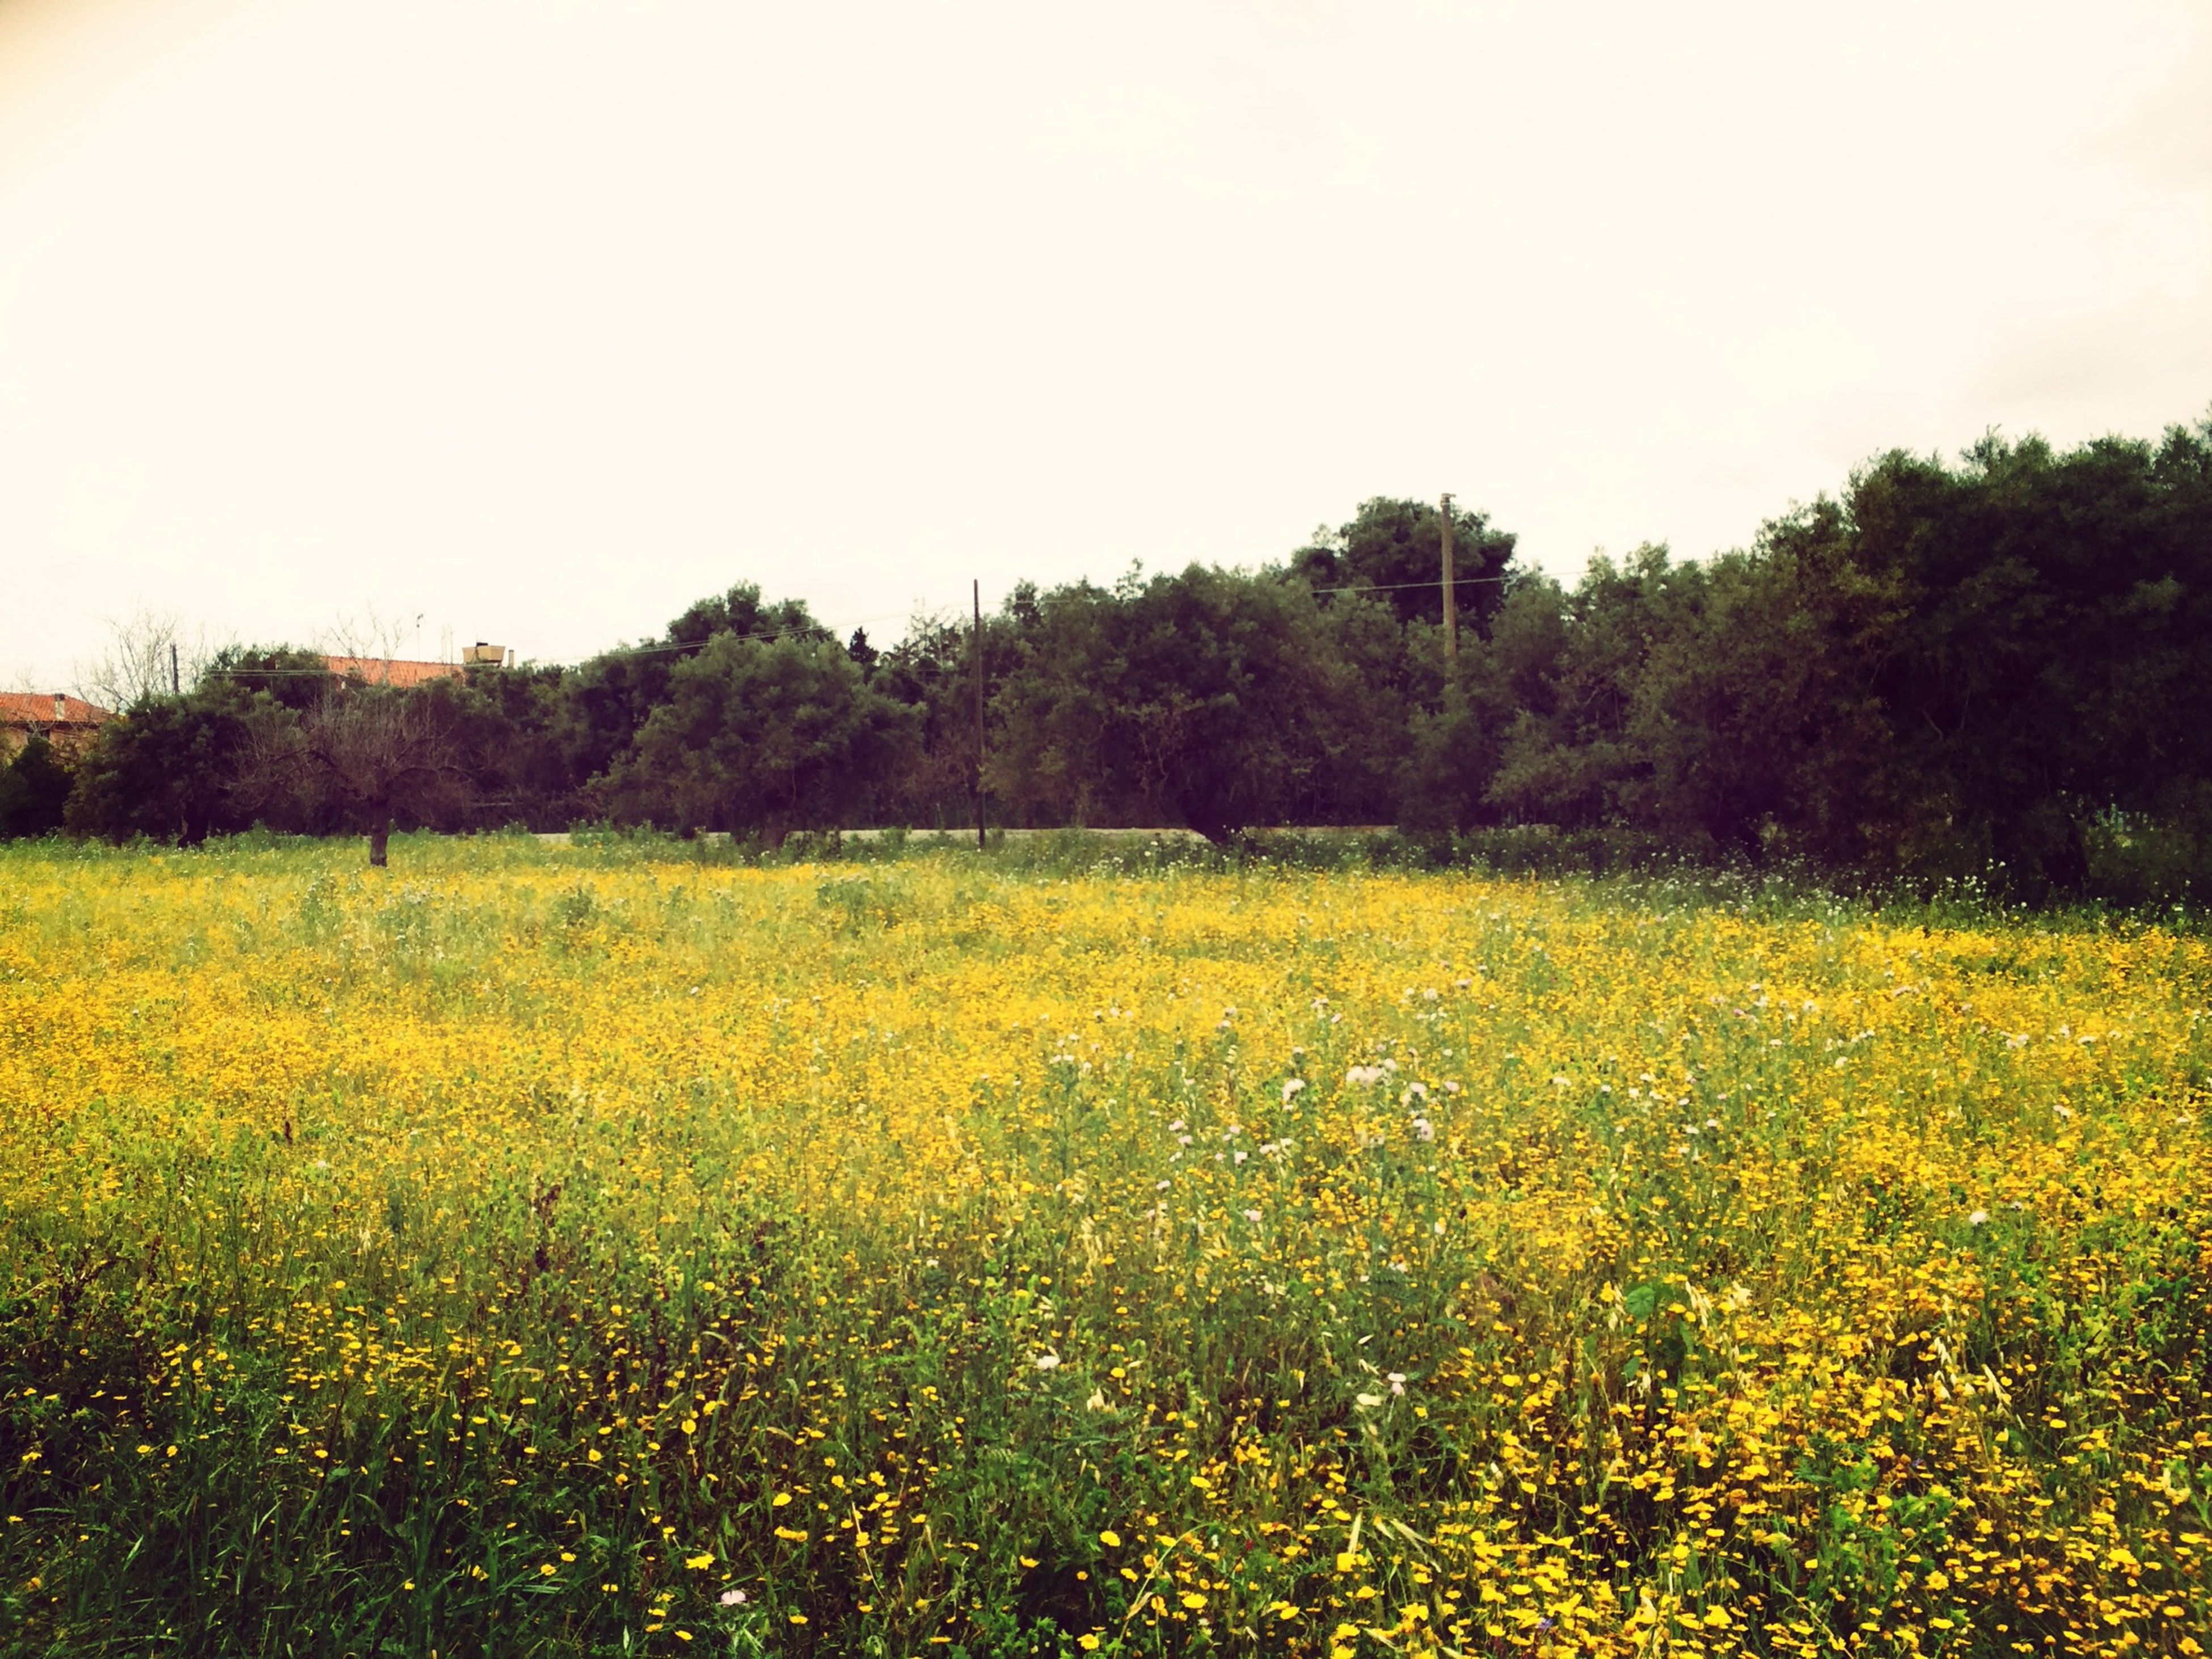 field, growth, yellow, flower, beauty in nature, tranquil scene, tranquility, clear sky, landscape, nature, tree, rural scene, scenics, freshness, agriculture, copy space, plant, grass, green color, outdoors